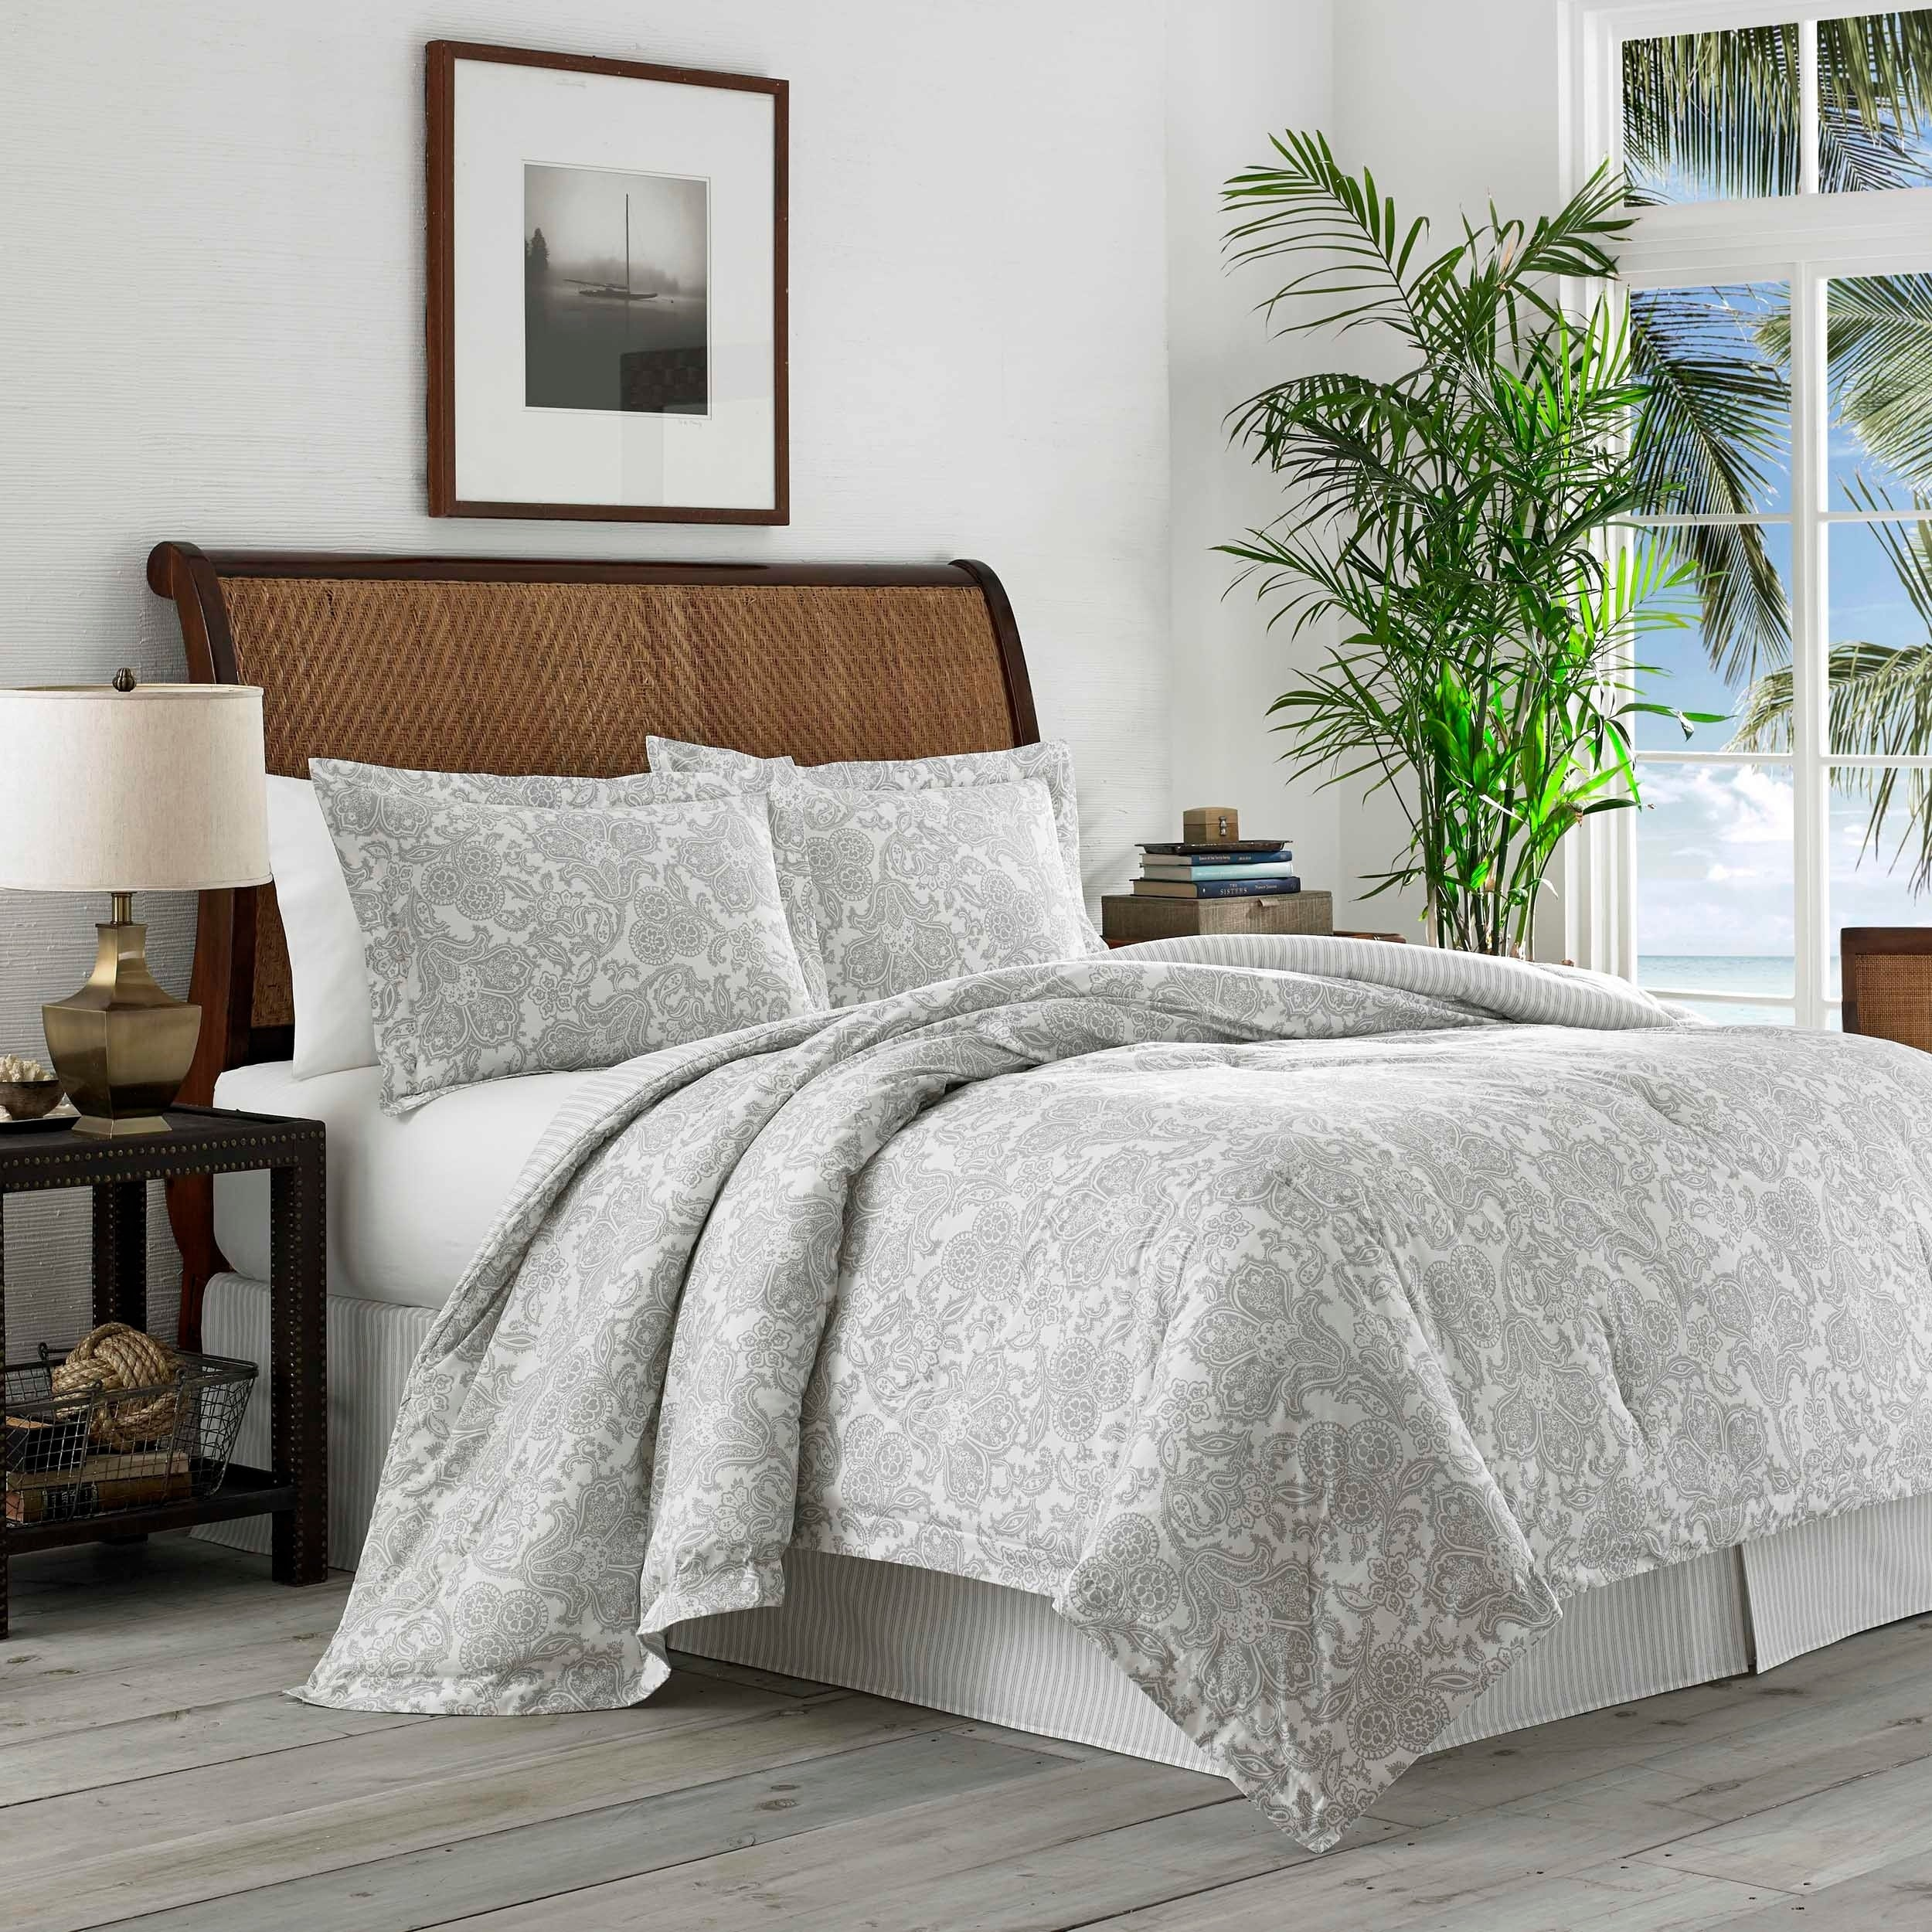 king bedding comforter product bahama cotton shipping today free cabana bath set overstock cuba tommy